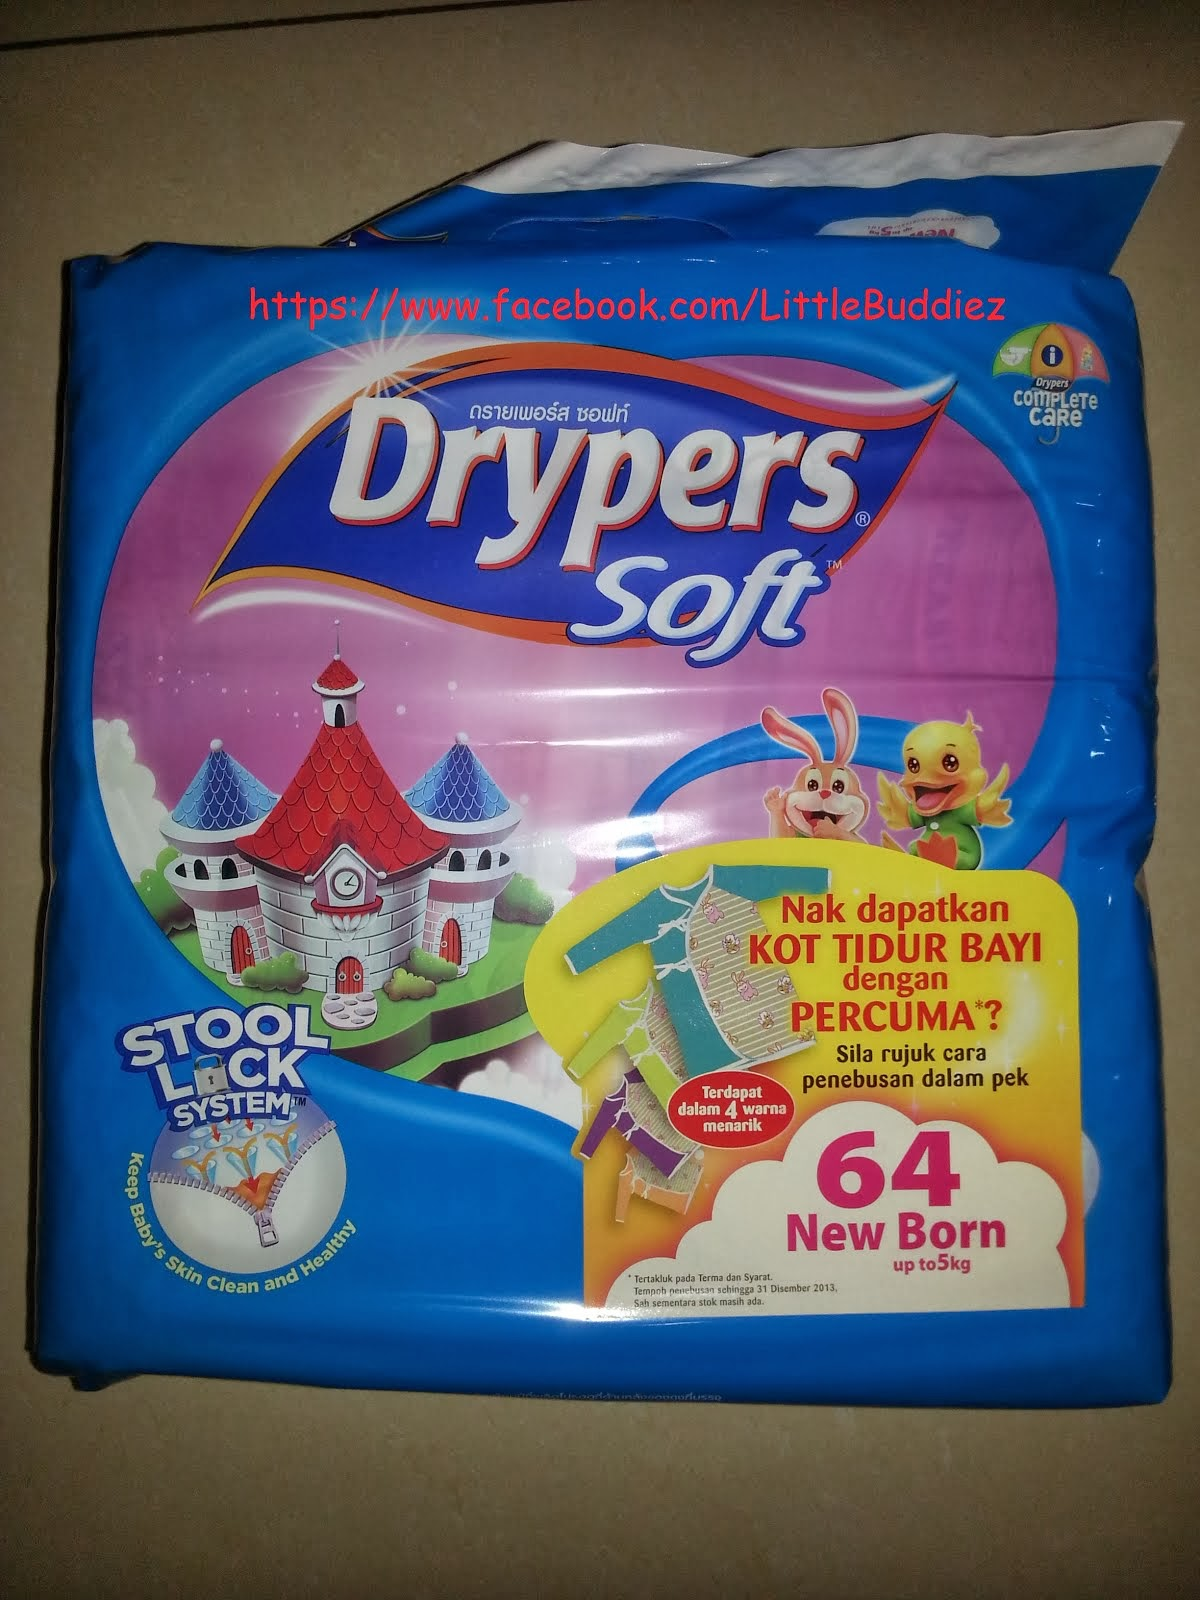 Original Drypers Soft (Newborn - up to 5 kg)